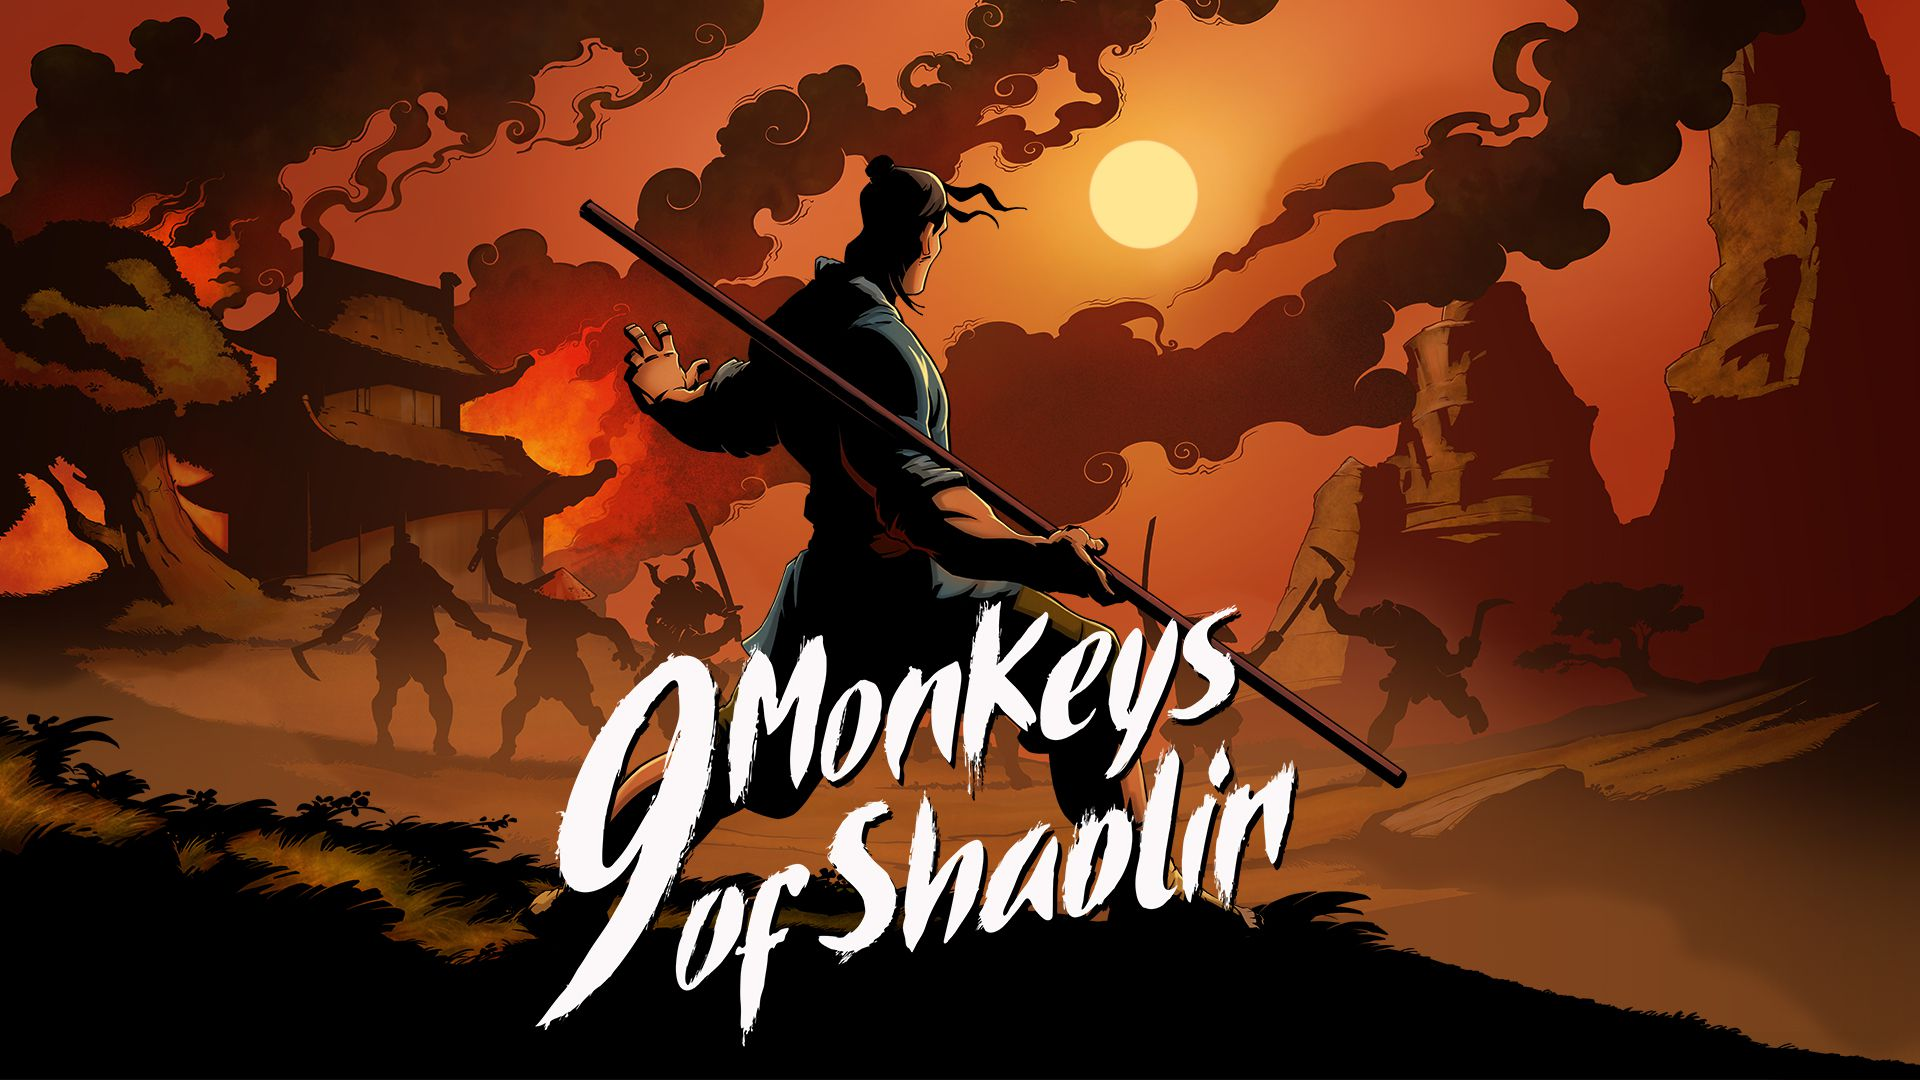 9 Monkeys of Shaolin Principal